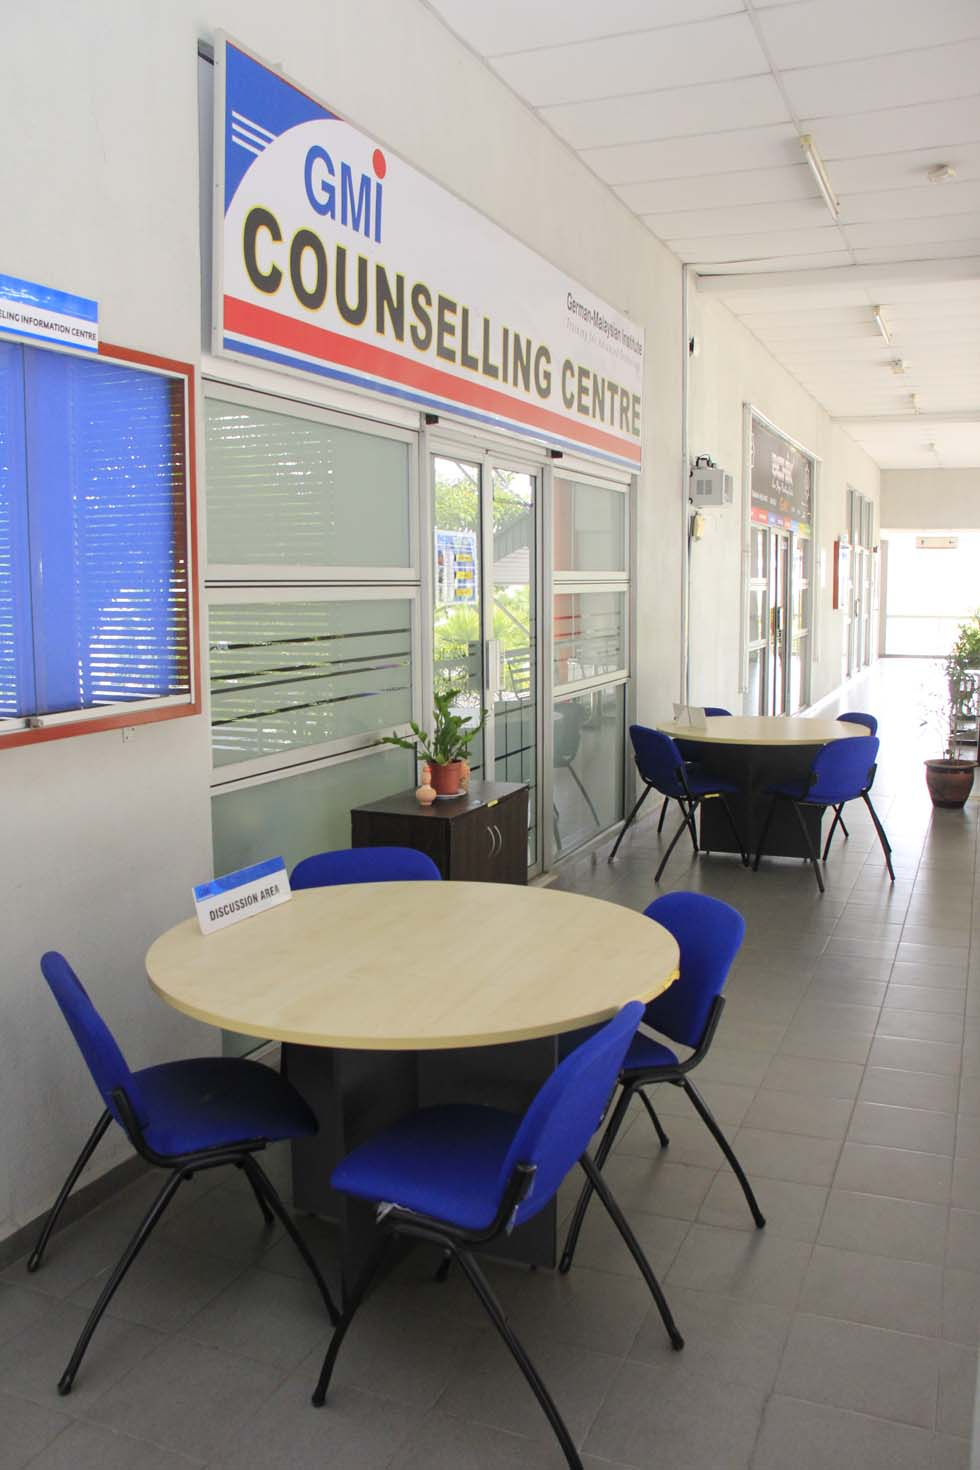 Counselling Centre